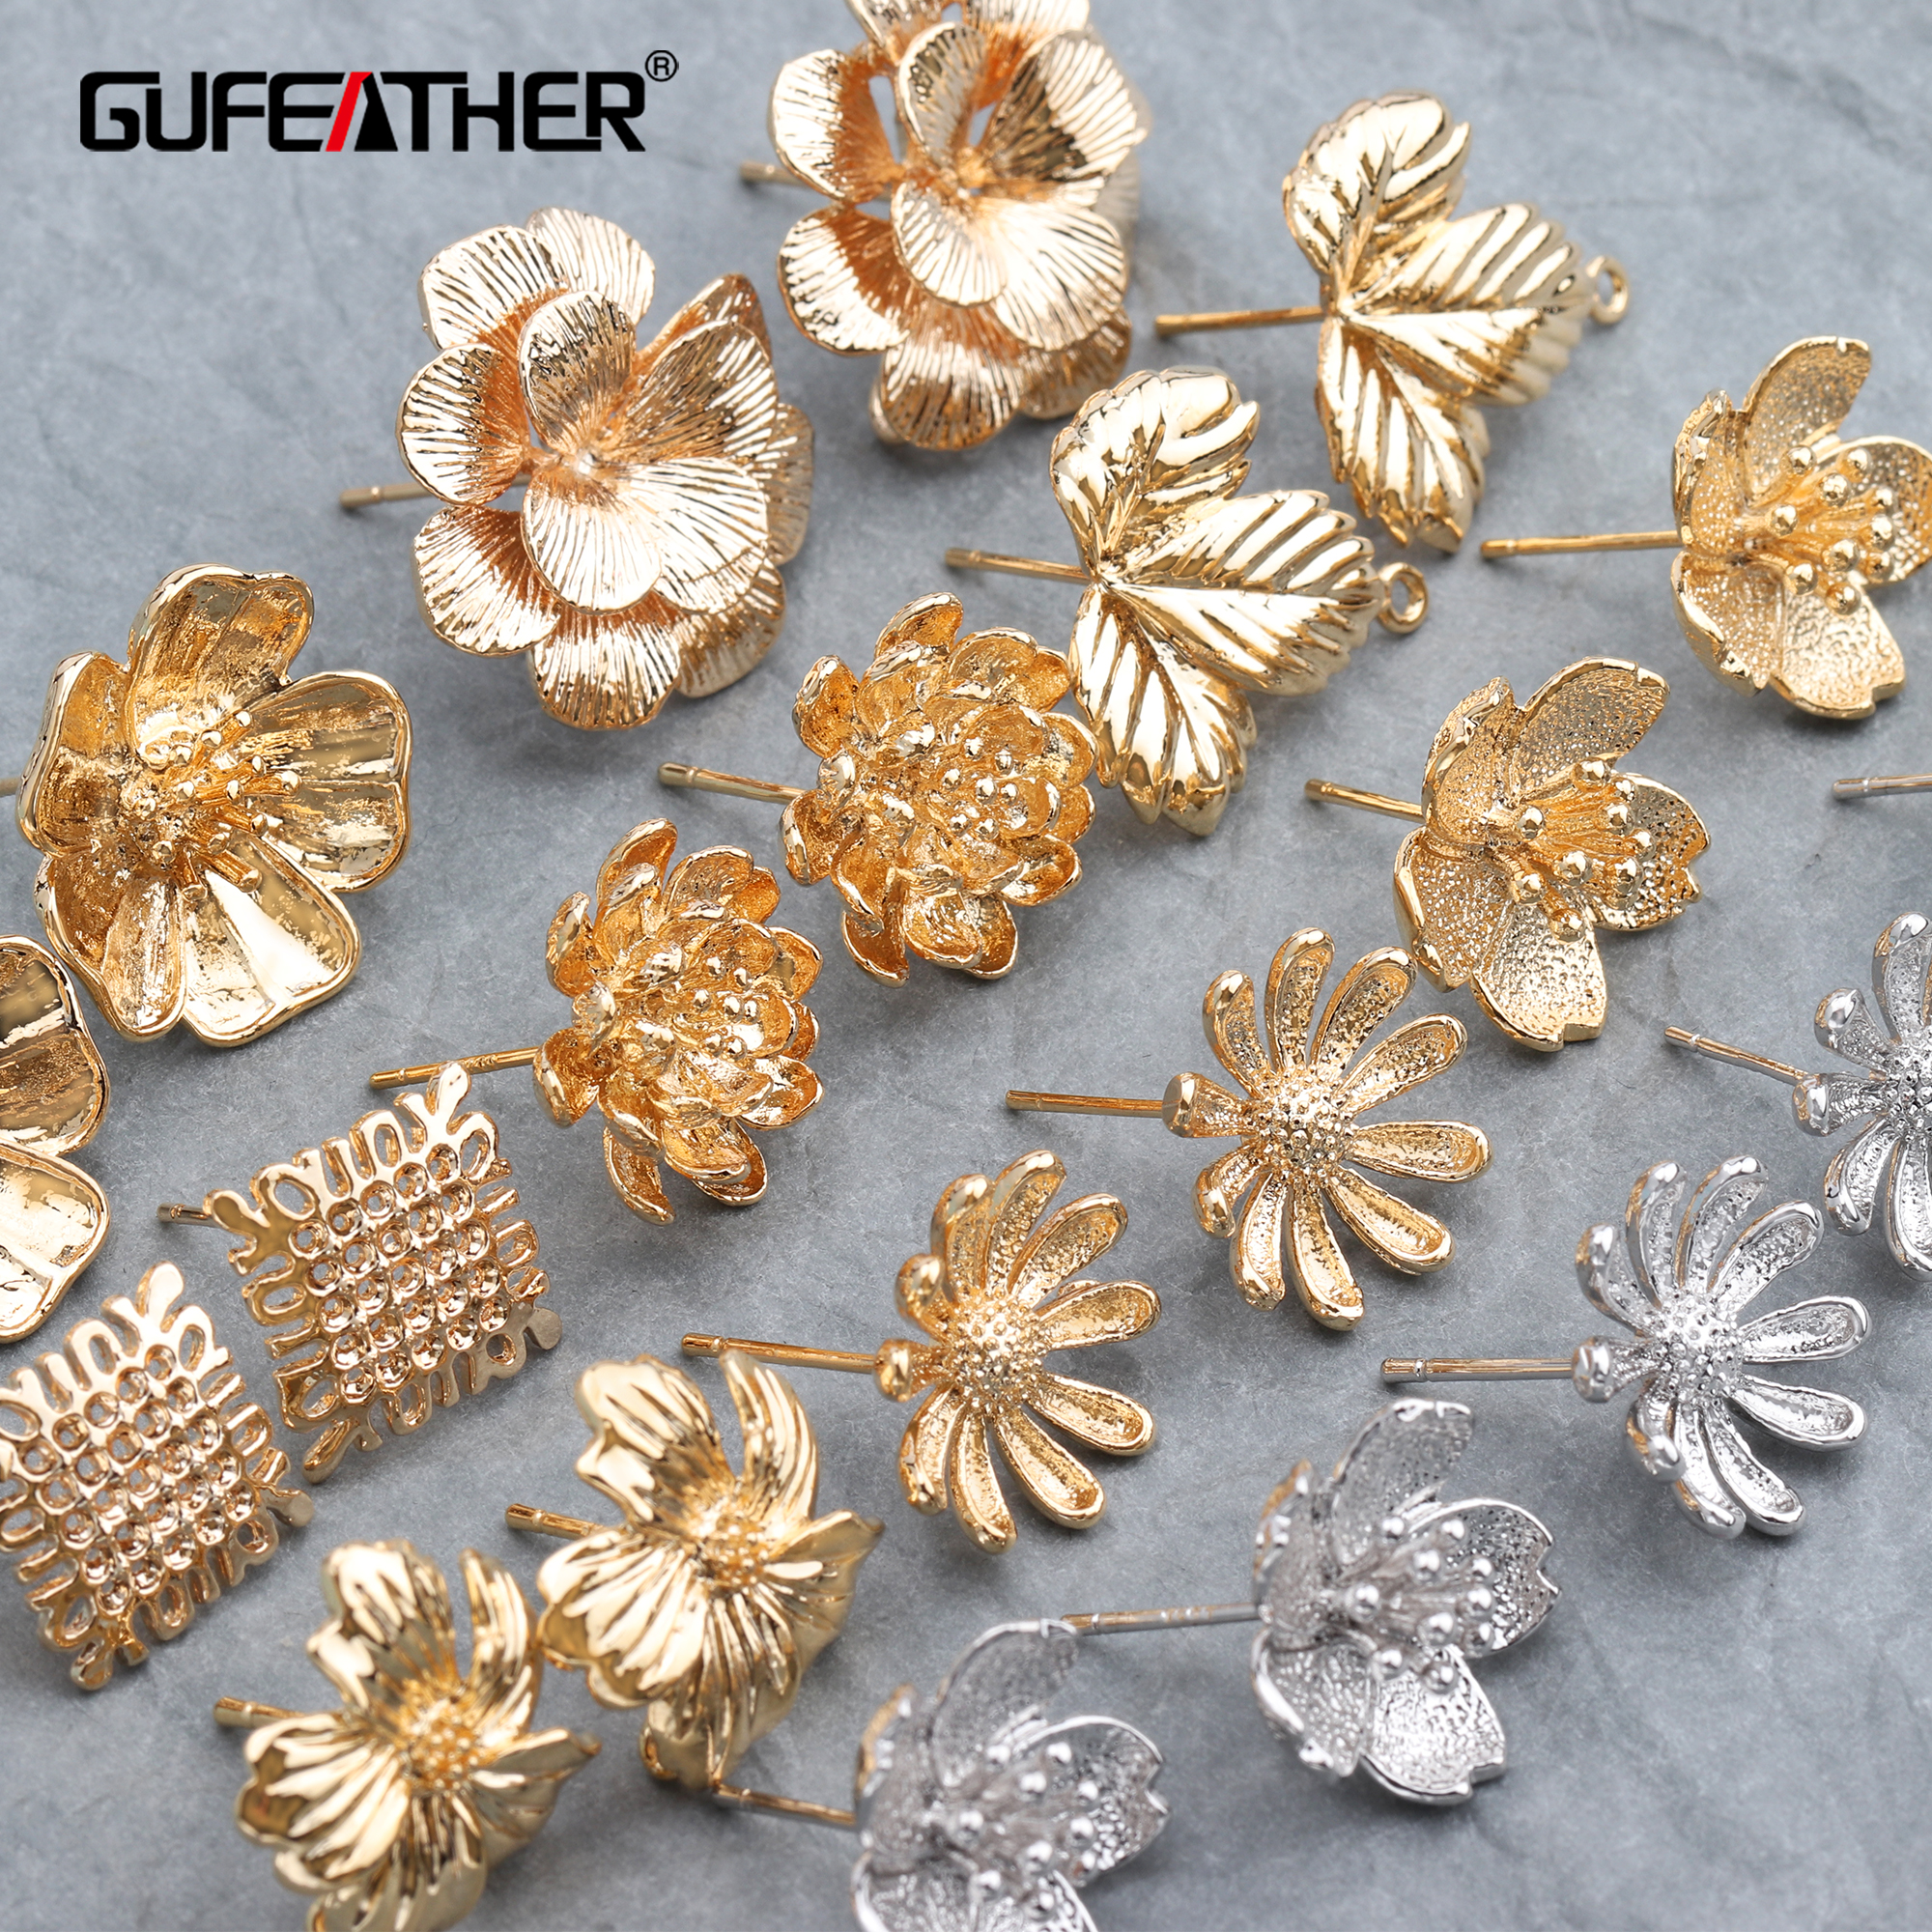 GUFEATHER M600,jewelry accessories,18k gold plated,0.3 microns,rhodium plated,stud earring,diy earring,jewelry making,10pcs/lot